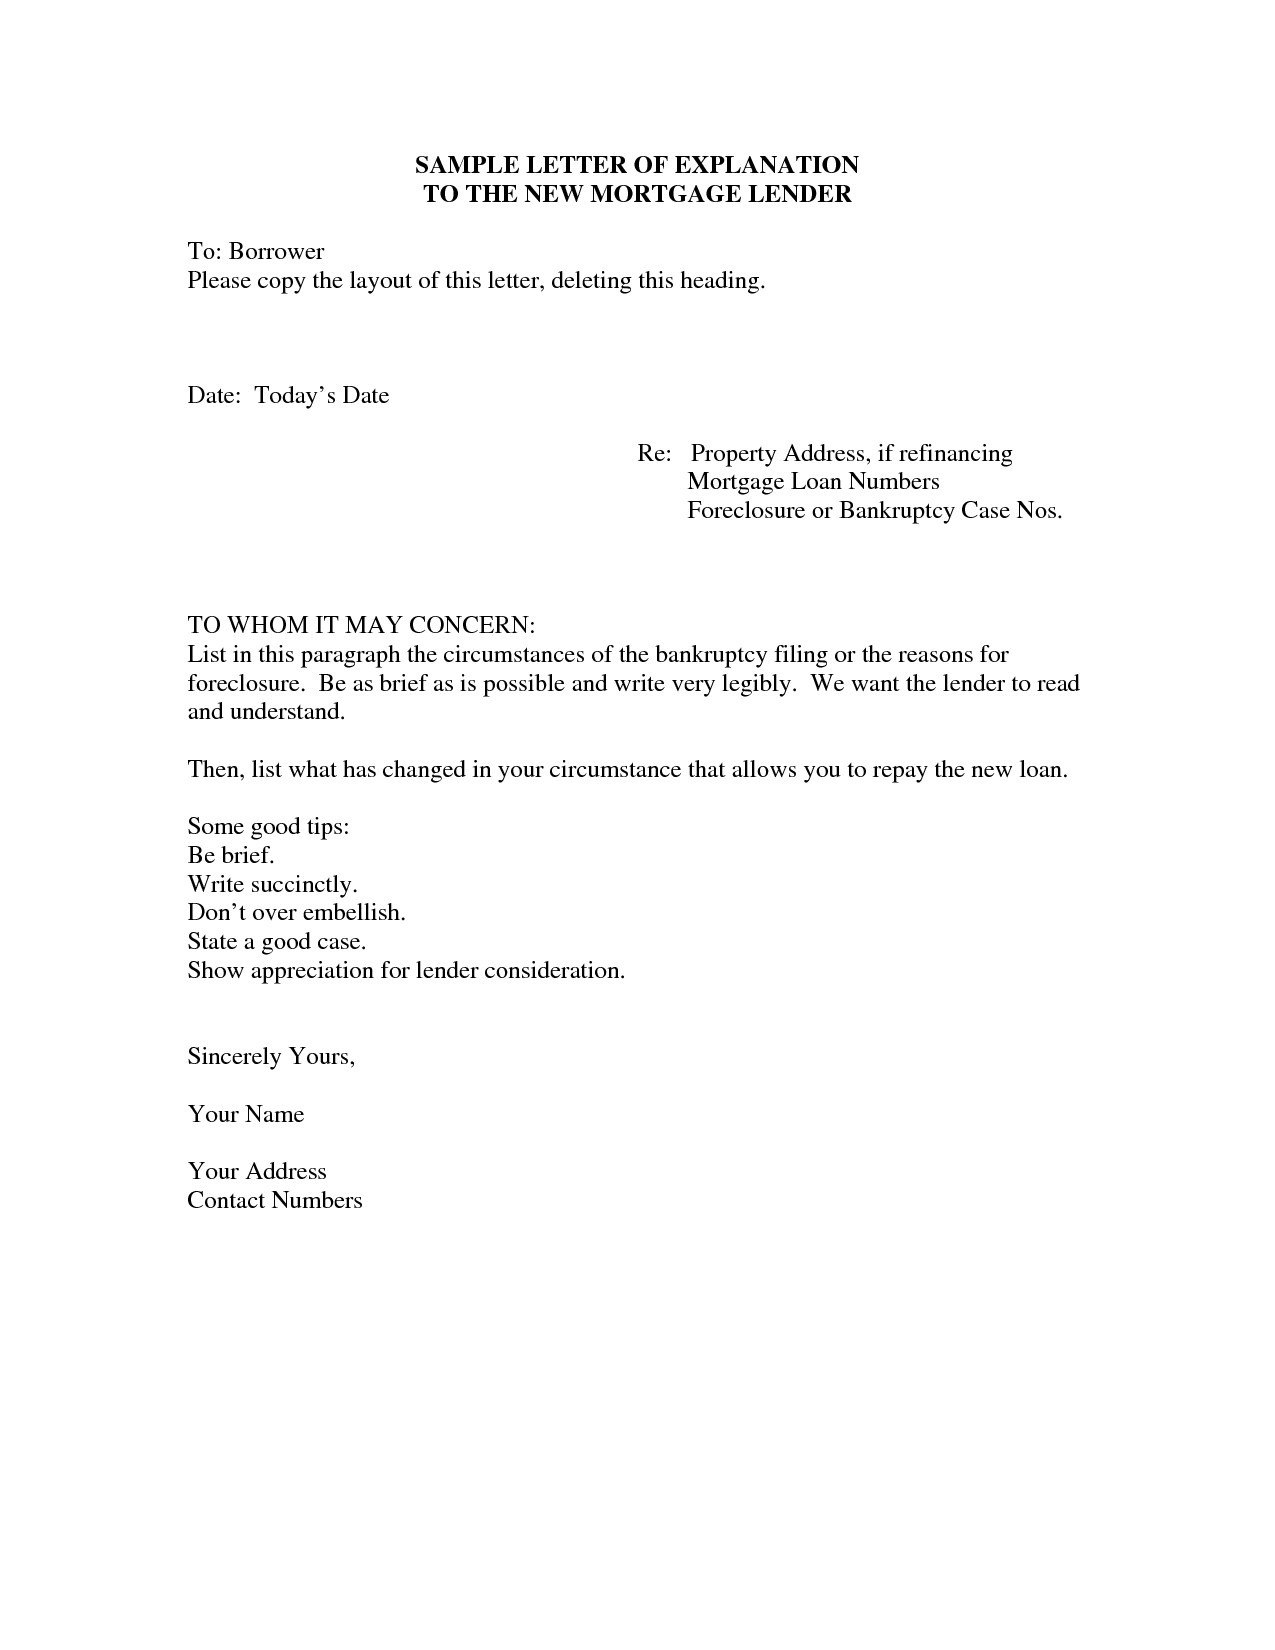 Letter Of Explanation For Mortgage Word Template Examples  Letter With Regard To Mortgage Letter Templates